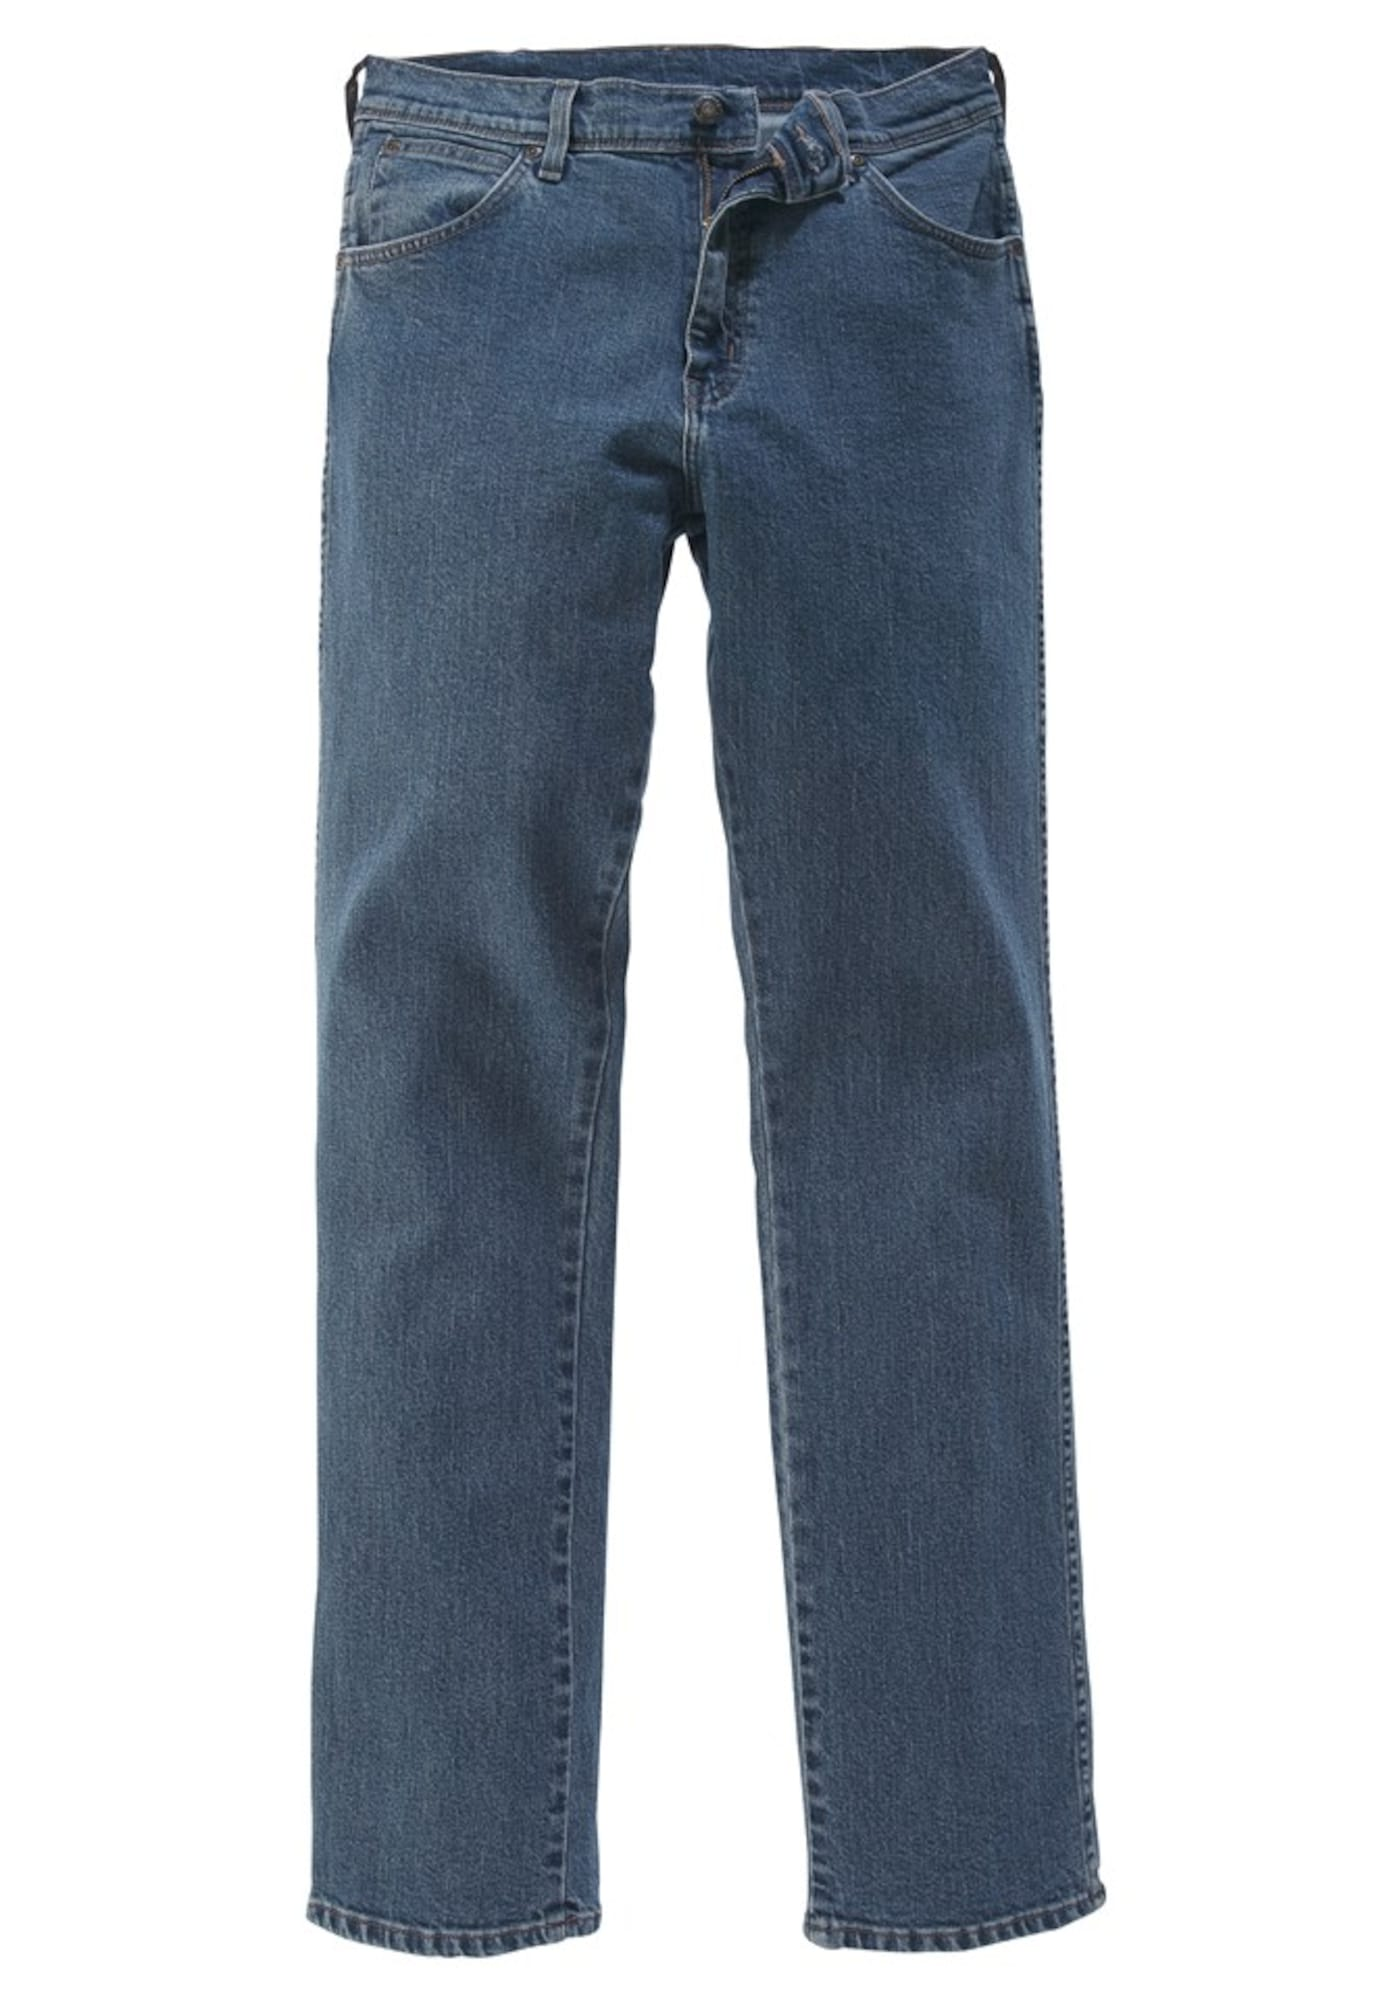 WRANGLER Heren Jeans Stretch blauw denim